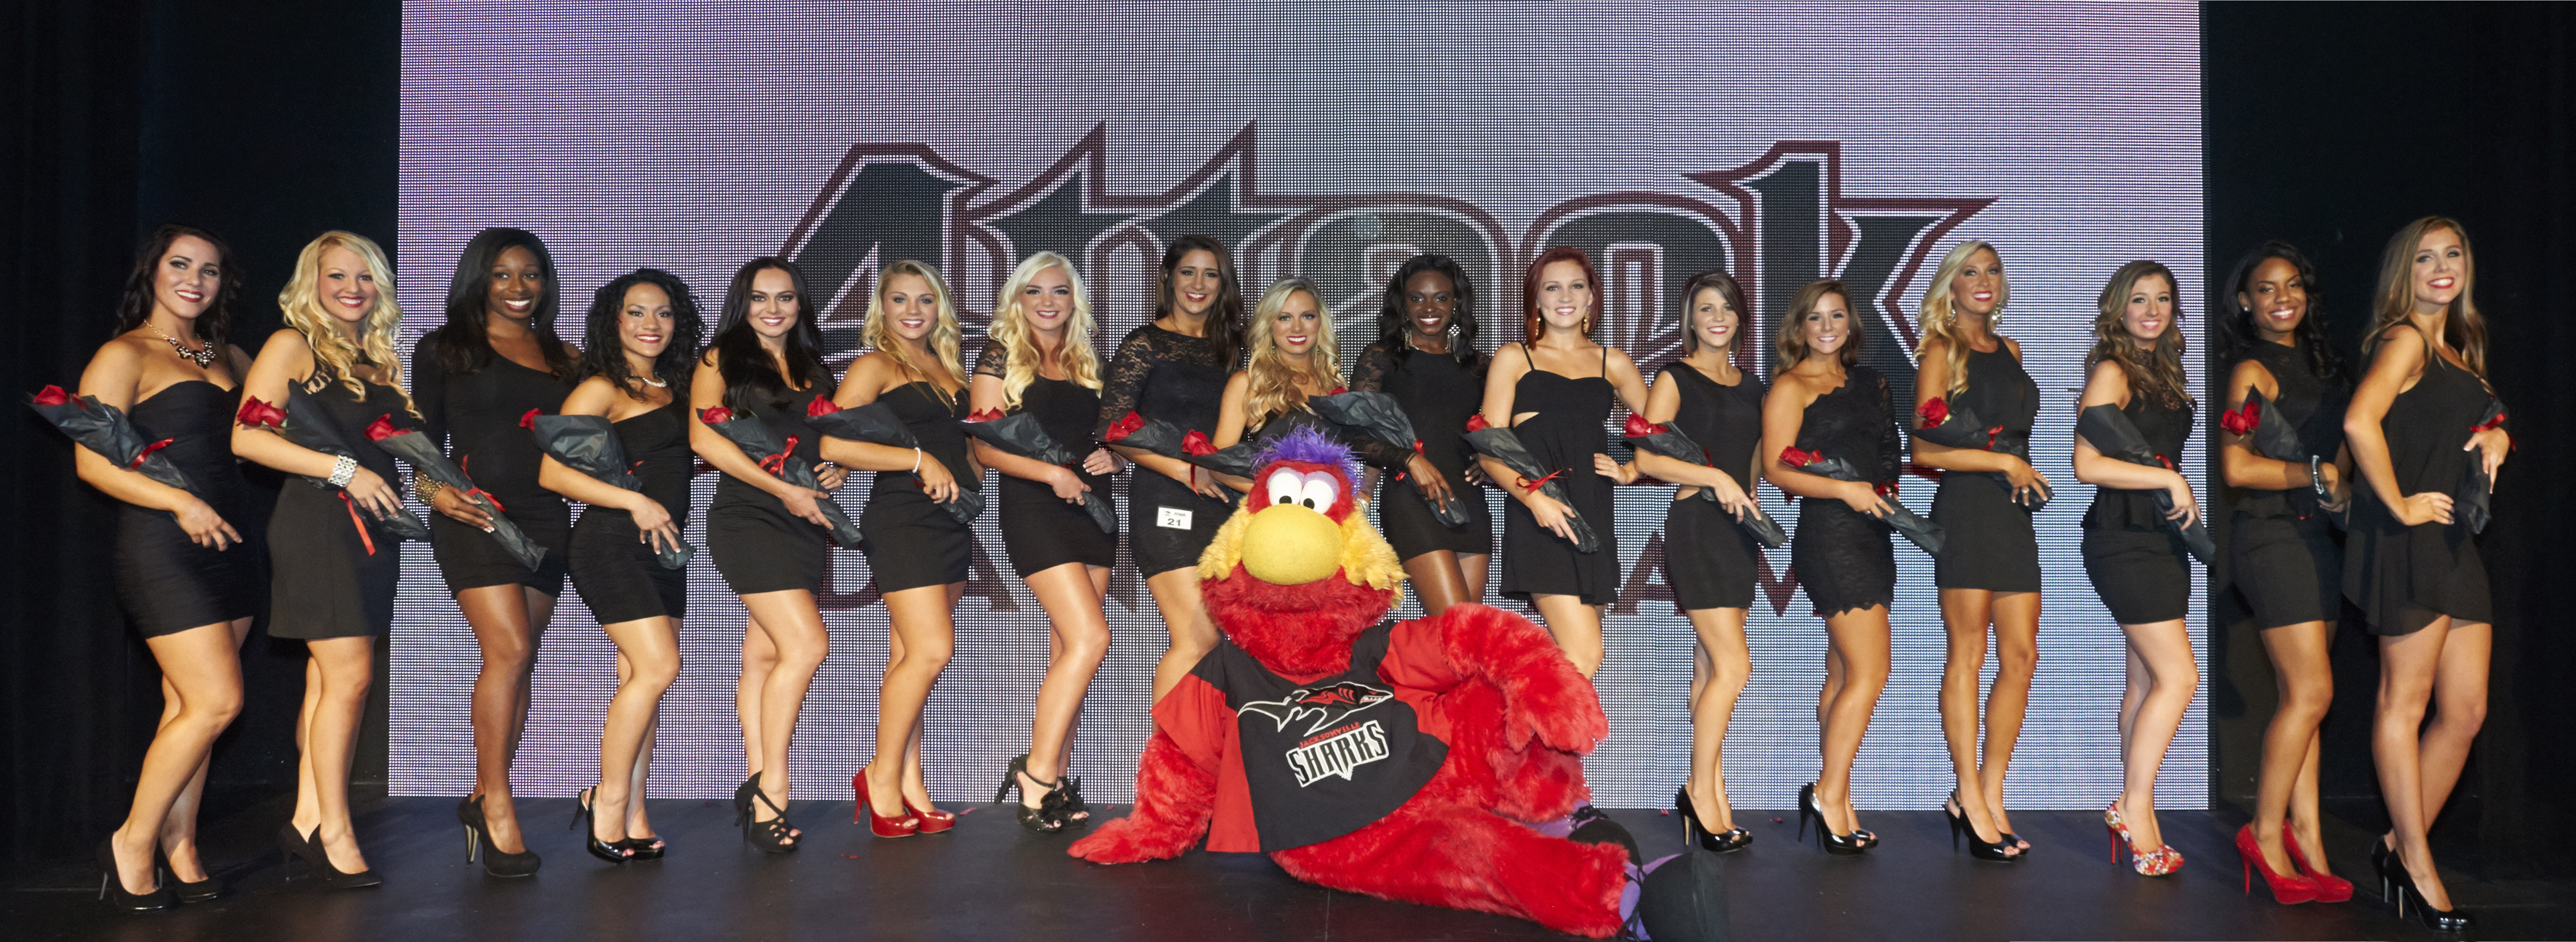 2013-2014AttackDanceTeam.jpg